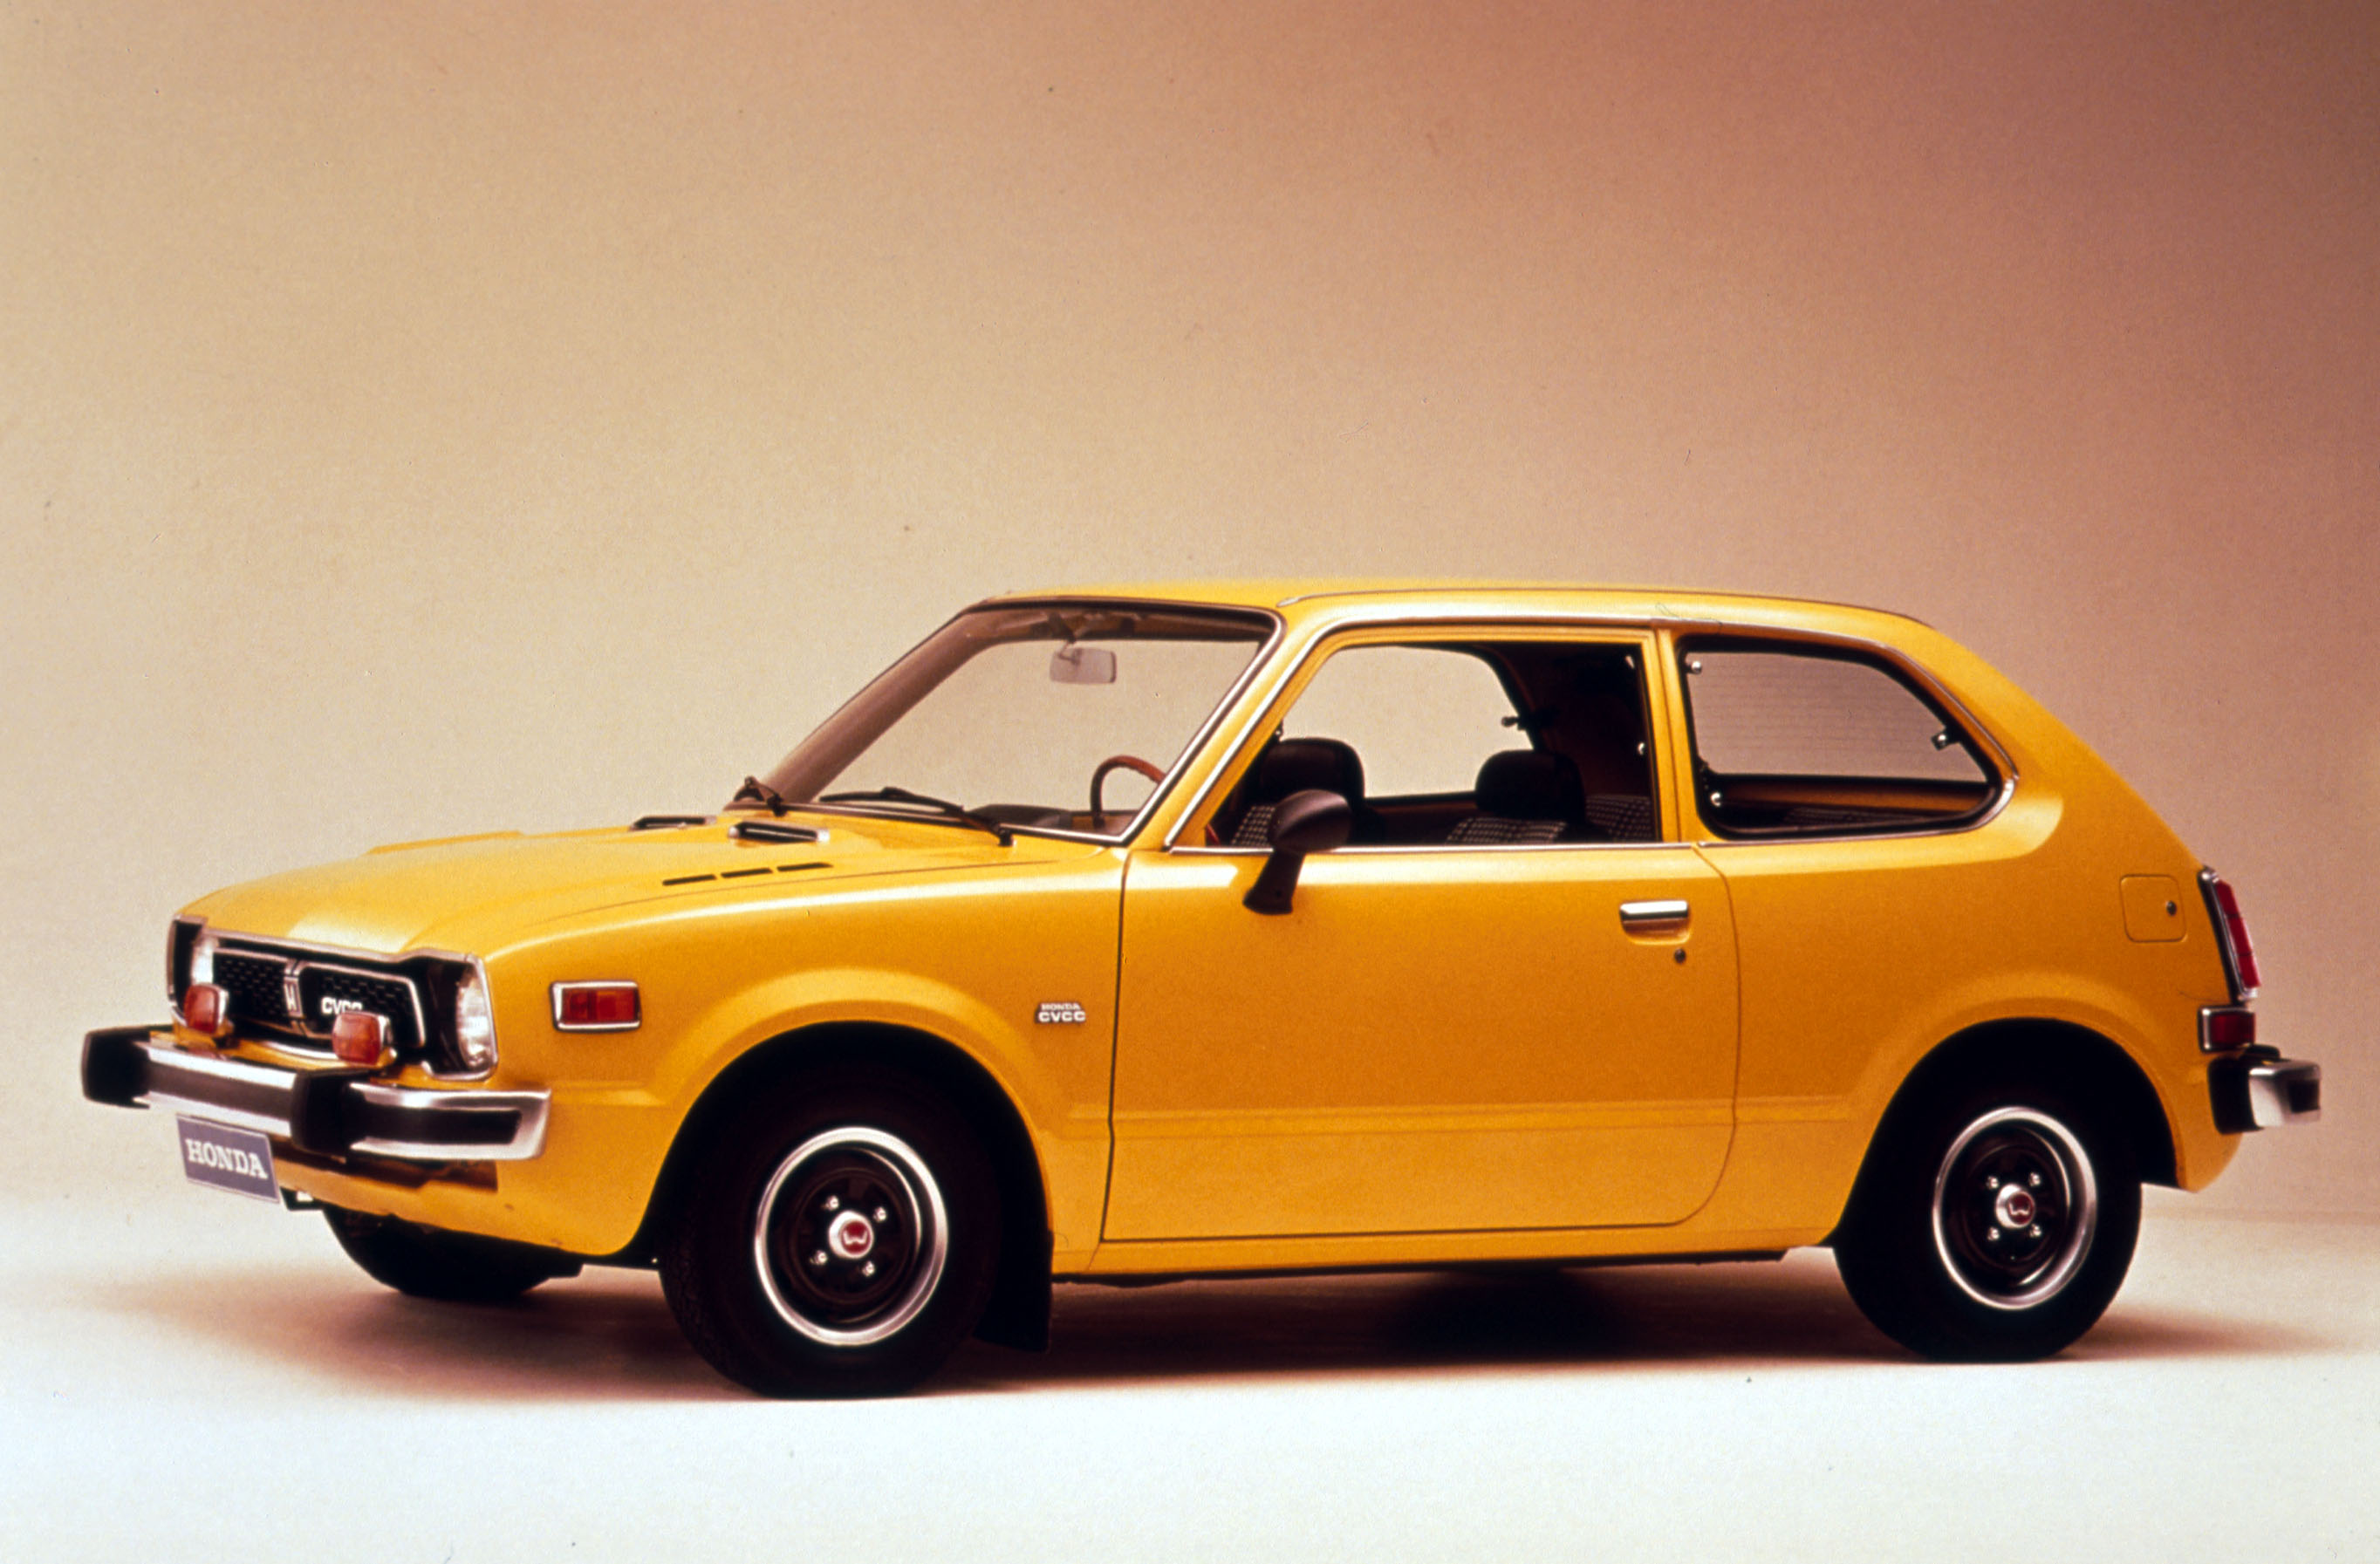 honda celebrates 50 years in the usa japanese nostalgic car. Black Bedroom Furniture Sets. Home Design Ideas